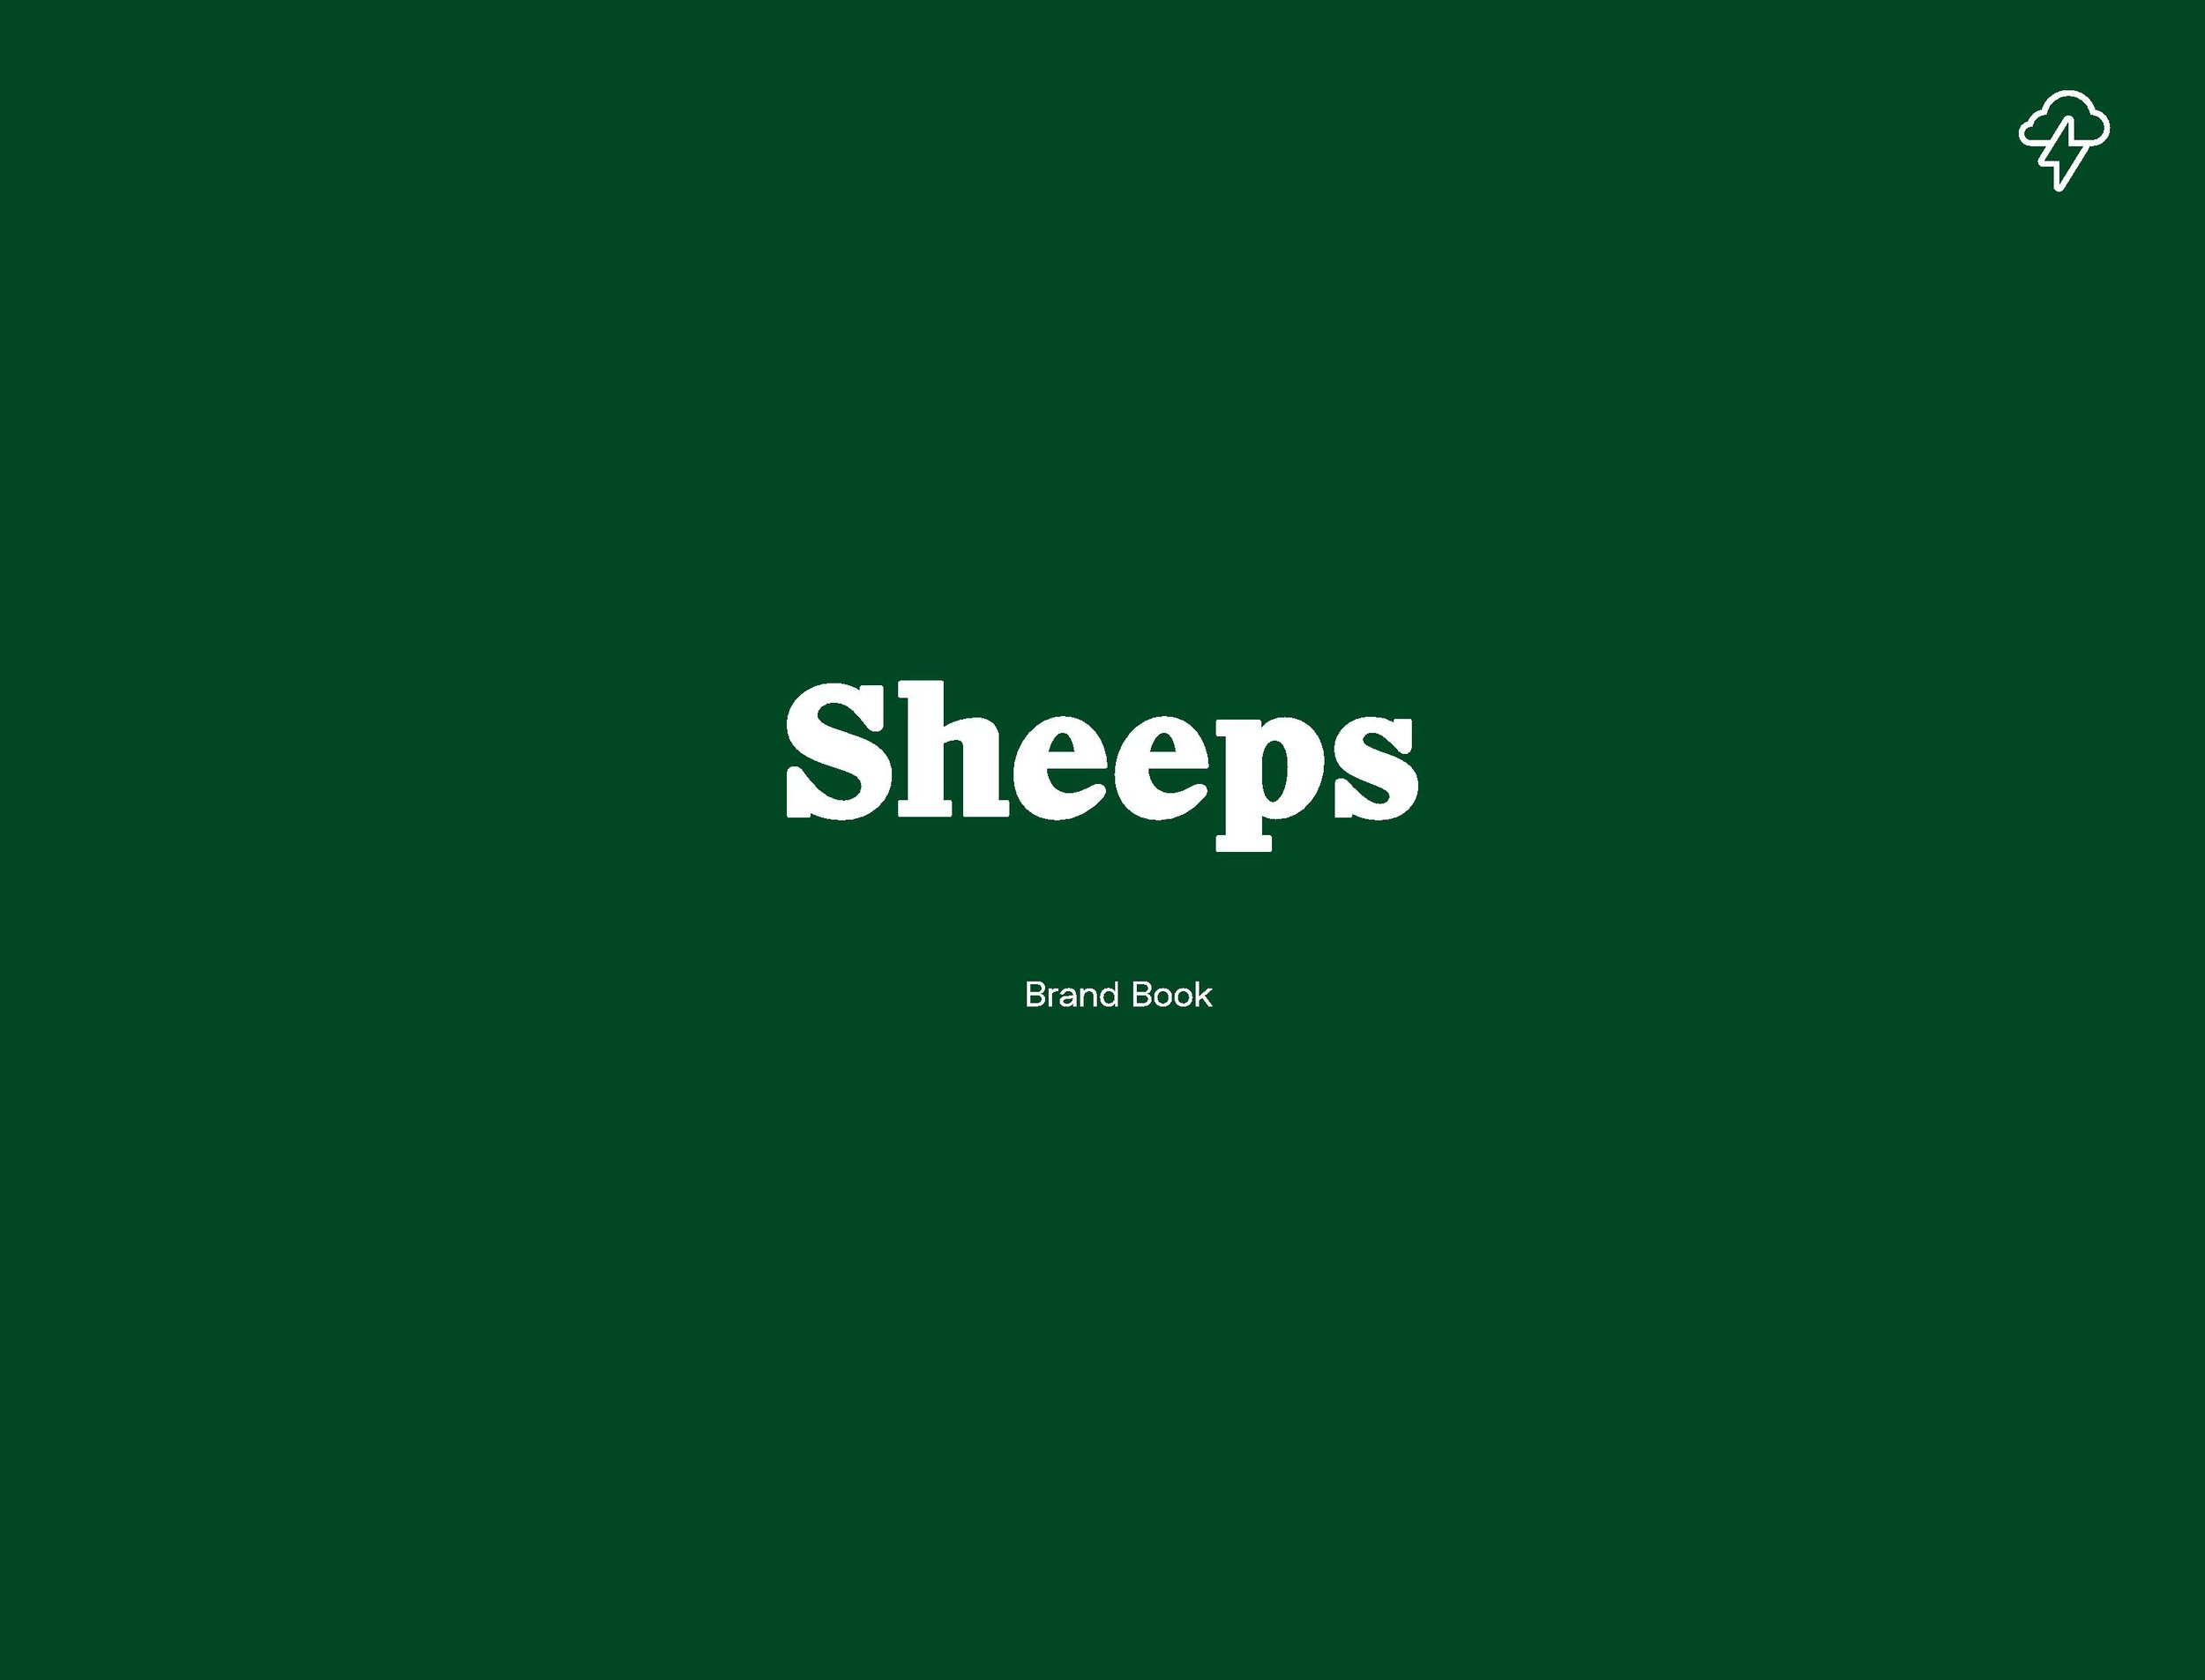 Sheeps Brand Guide-page-001.jpg